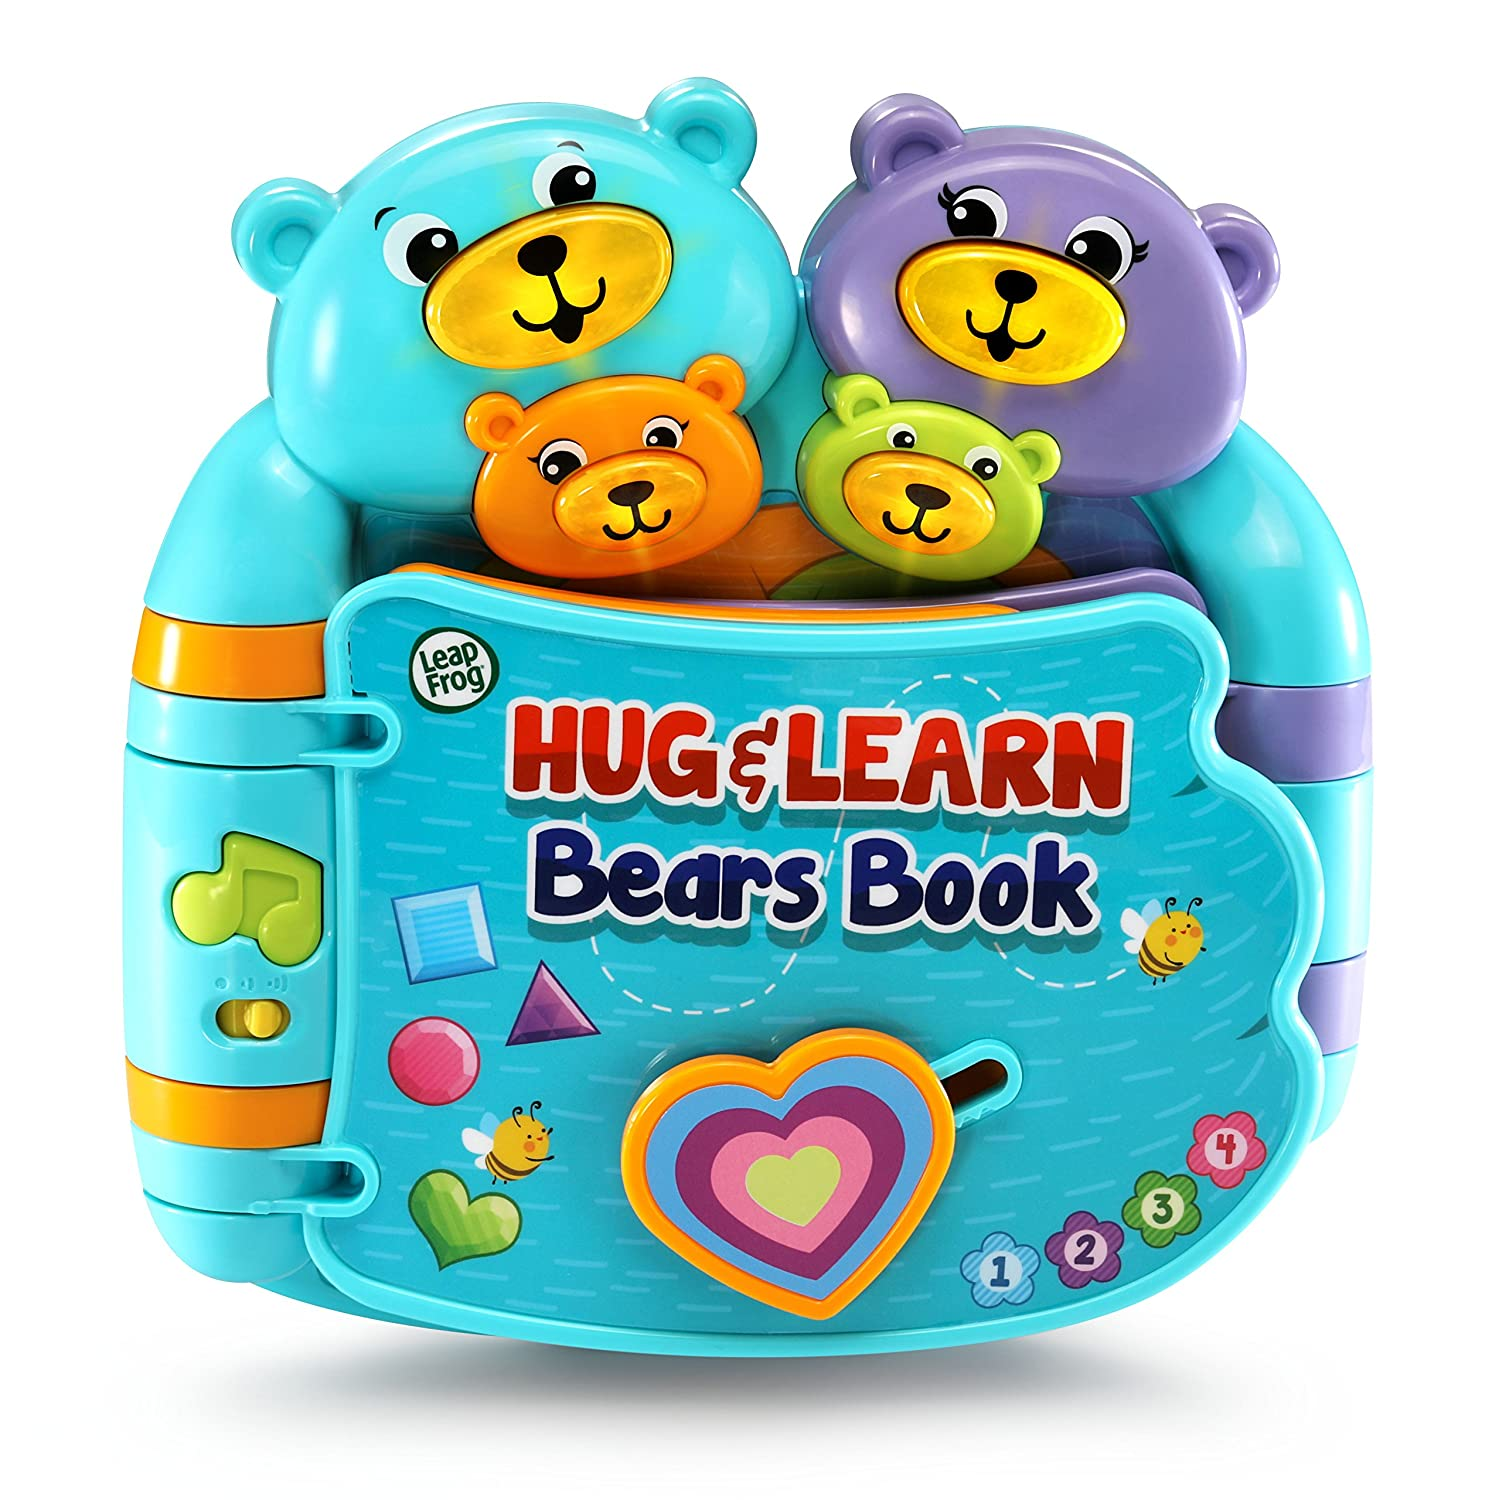 LeapFrog Hug Learn Bears Book Blue